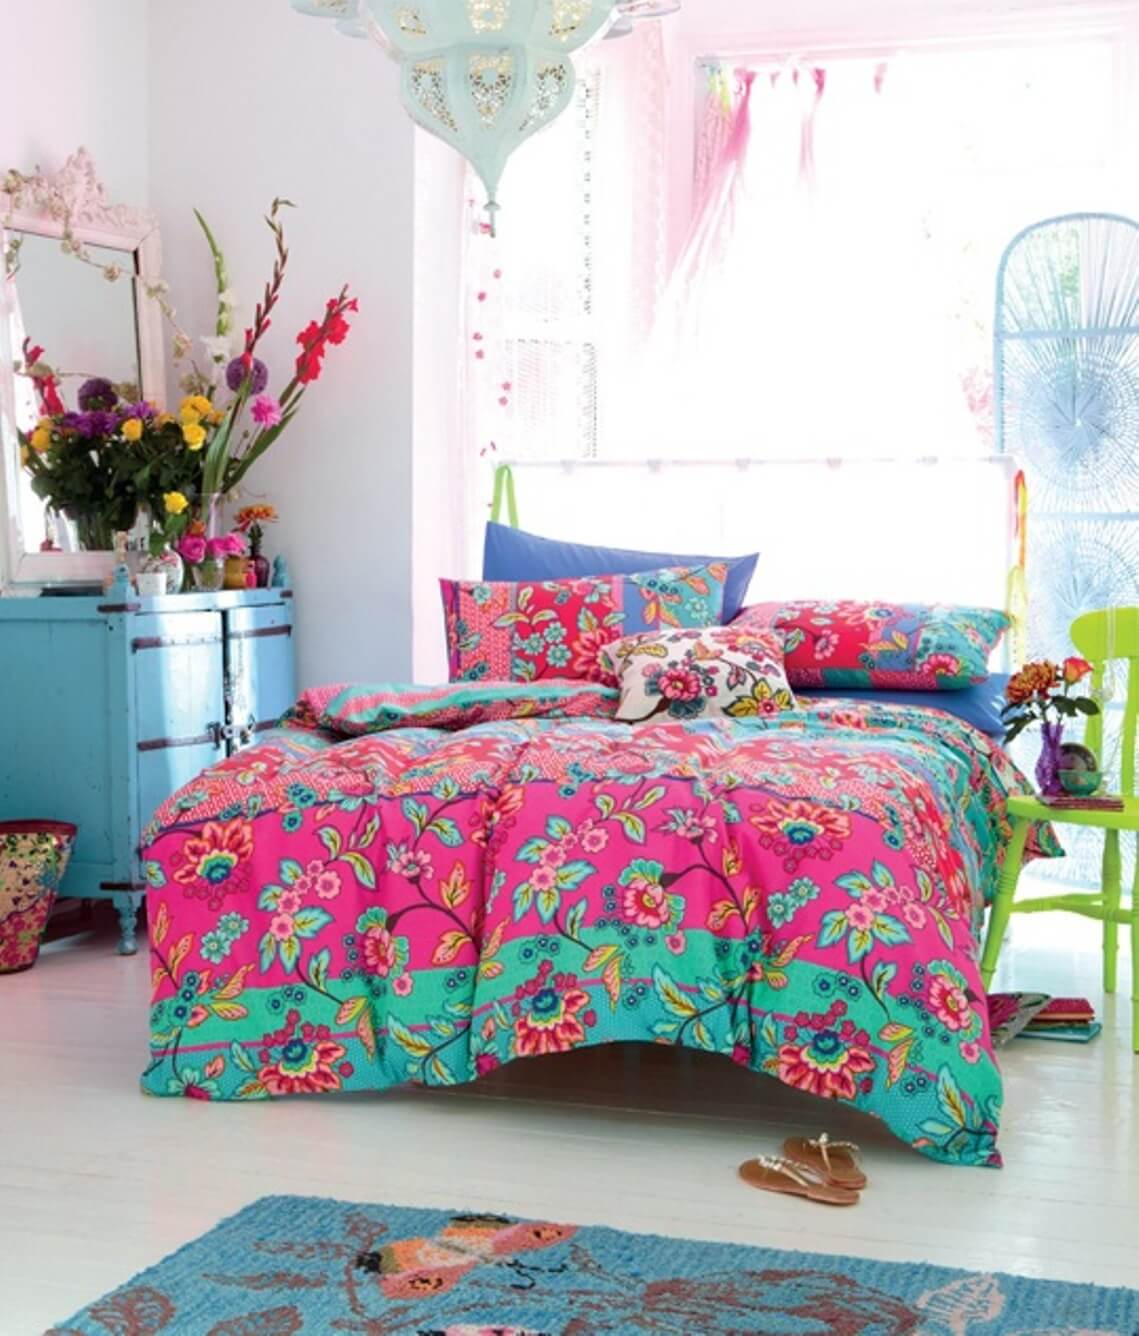 8 bohemian chic teen girl 39 s bedroom ideas - Boho chic deco ...